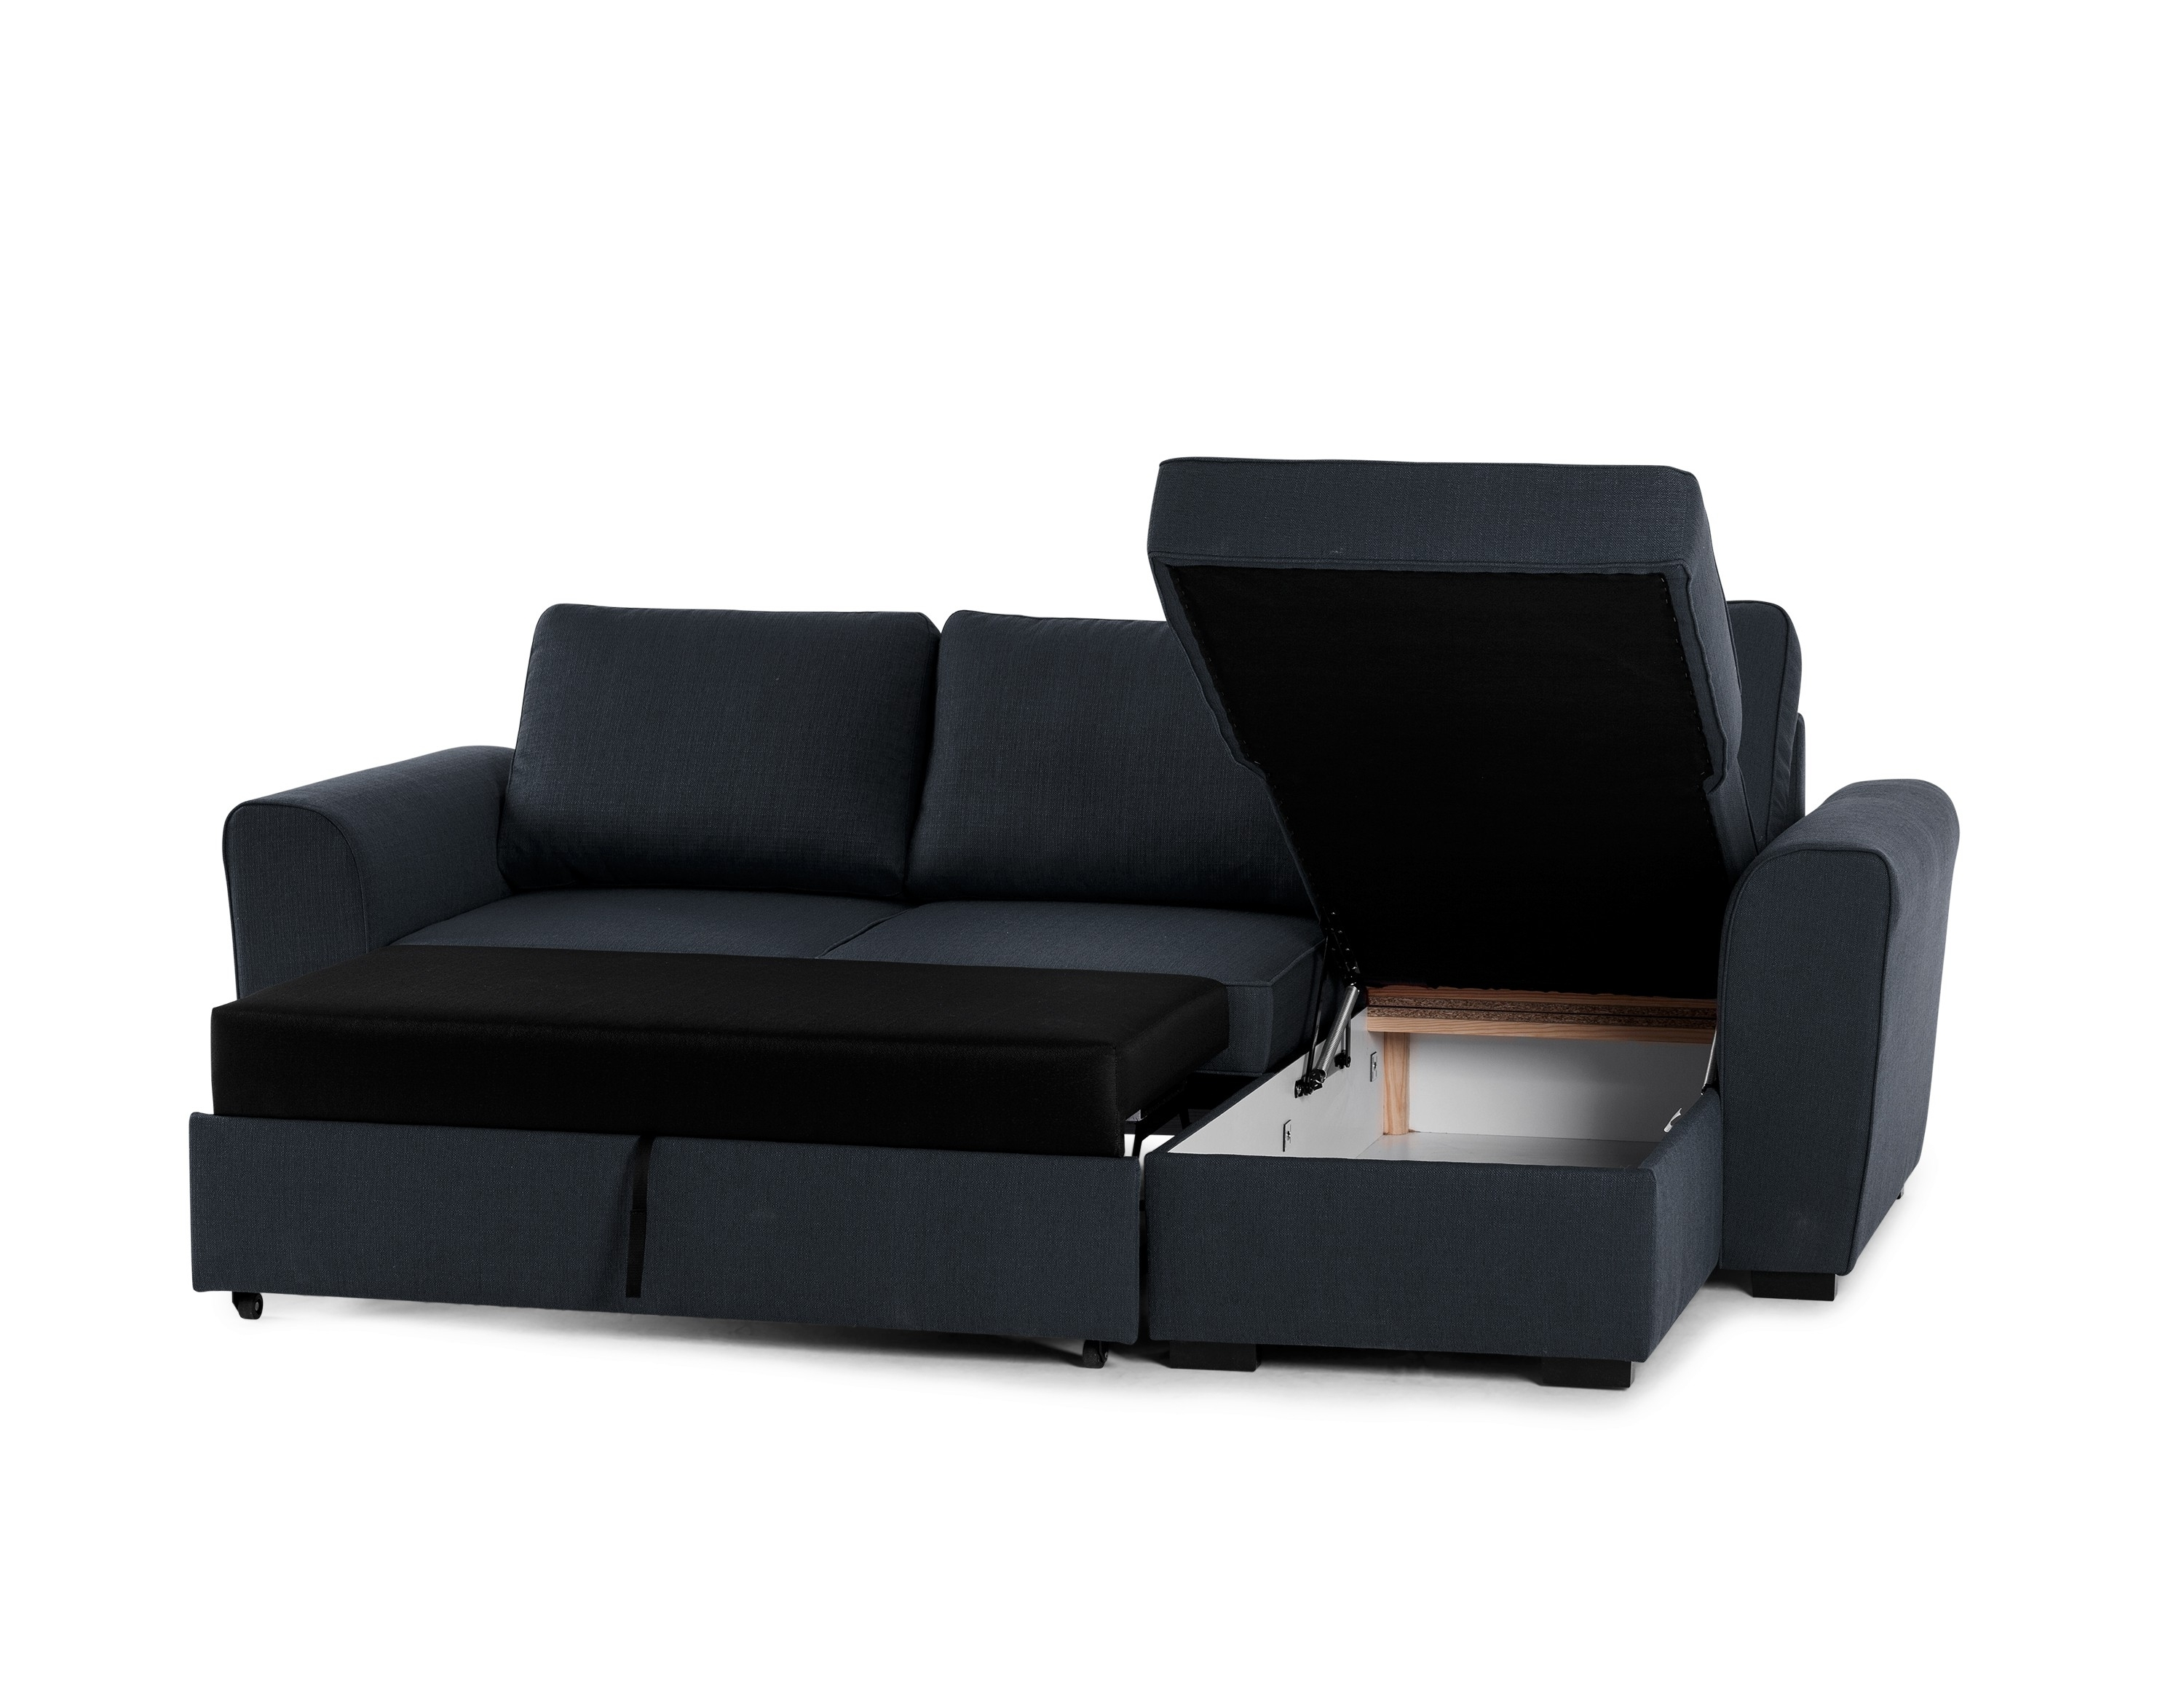 10X8 Sectional Sofas In Most Up To Date Sofa : Stunning Sectional Sofa Bed Apk 27801 2S 10X8 Cropafhs Pdp (Gallery 13 of 15)